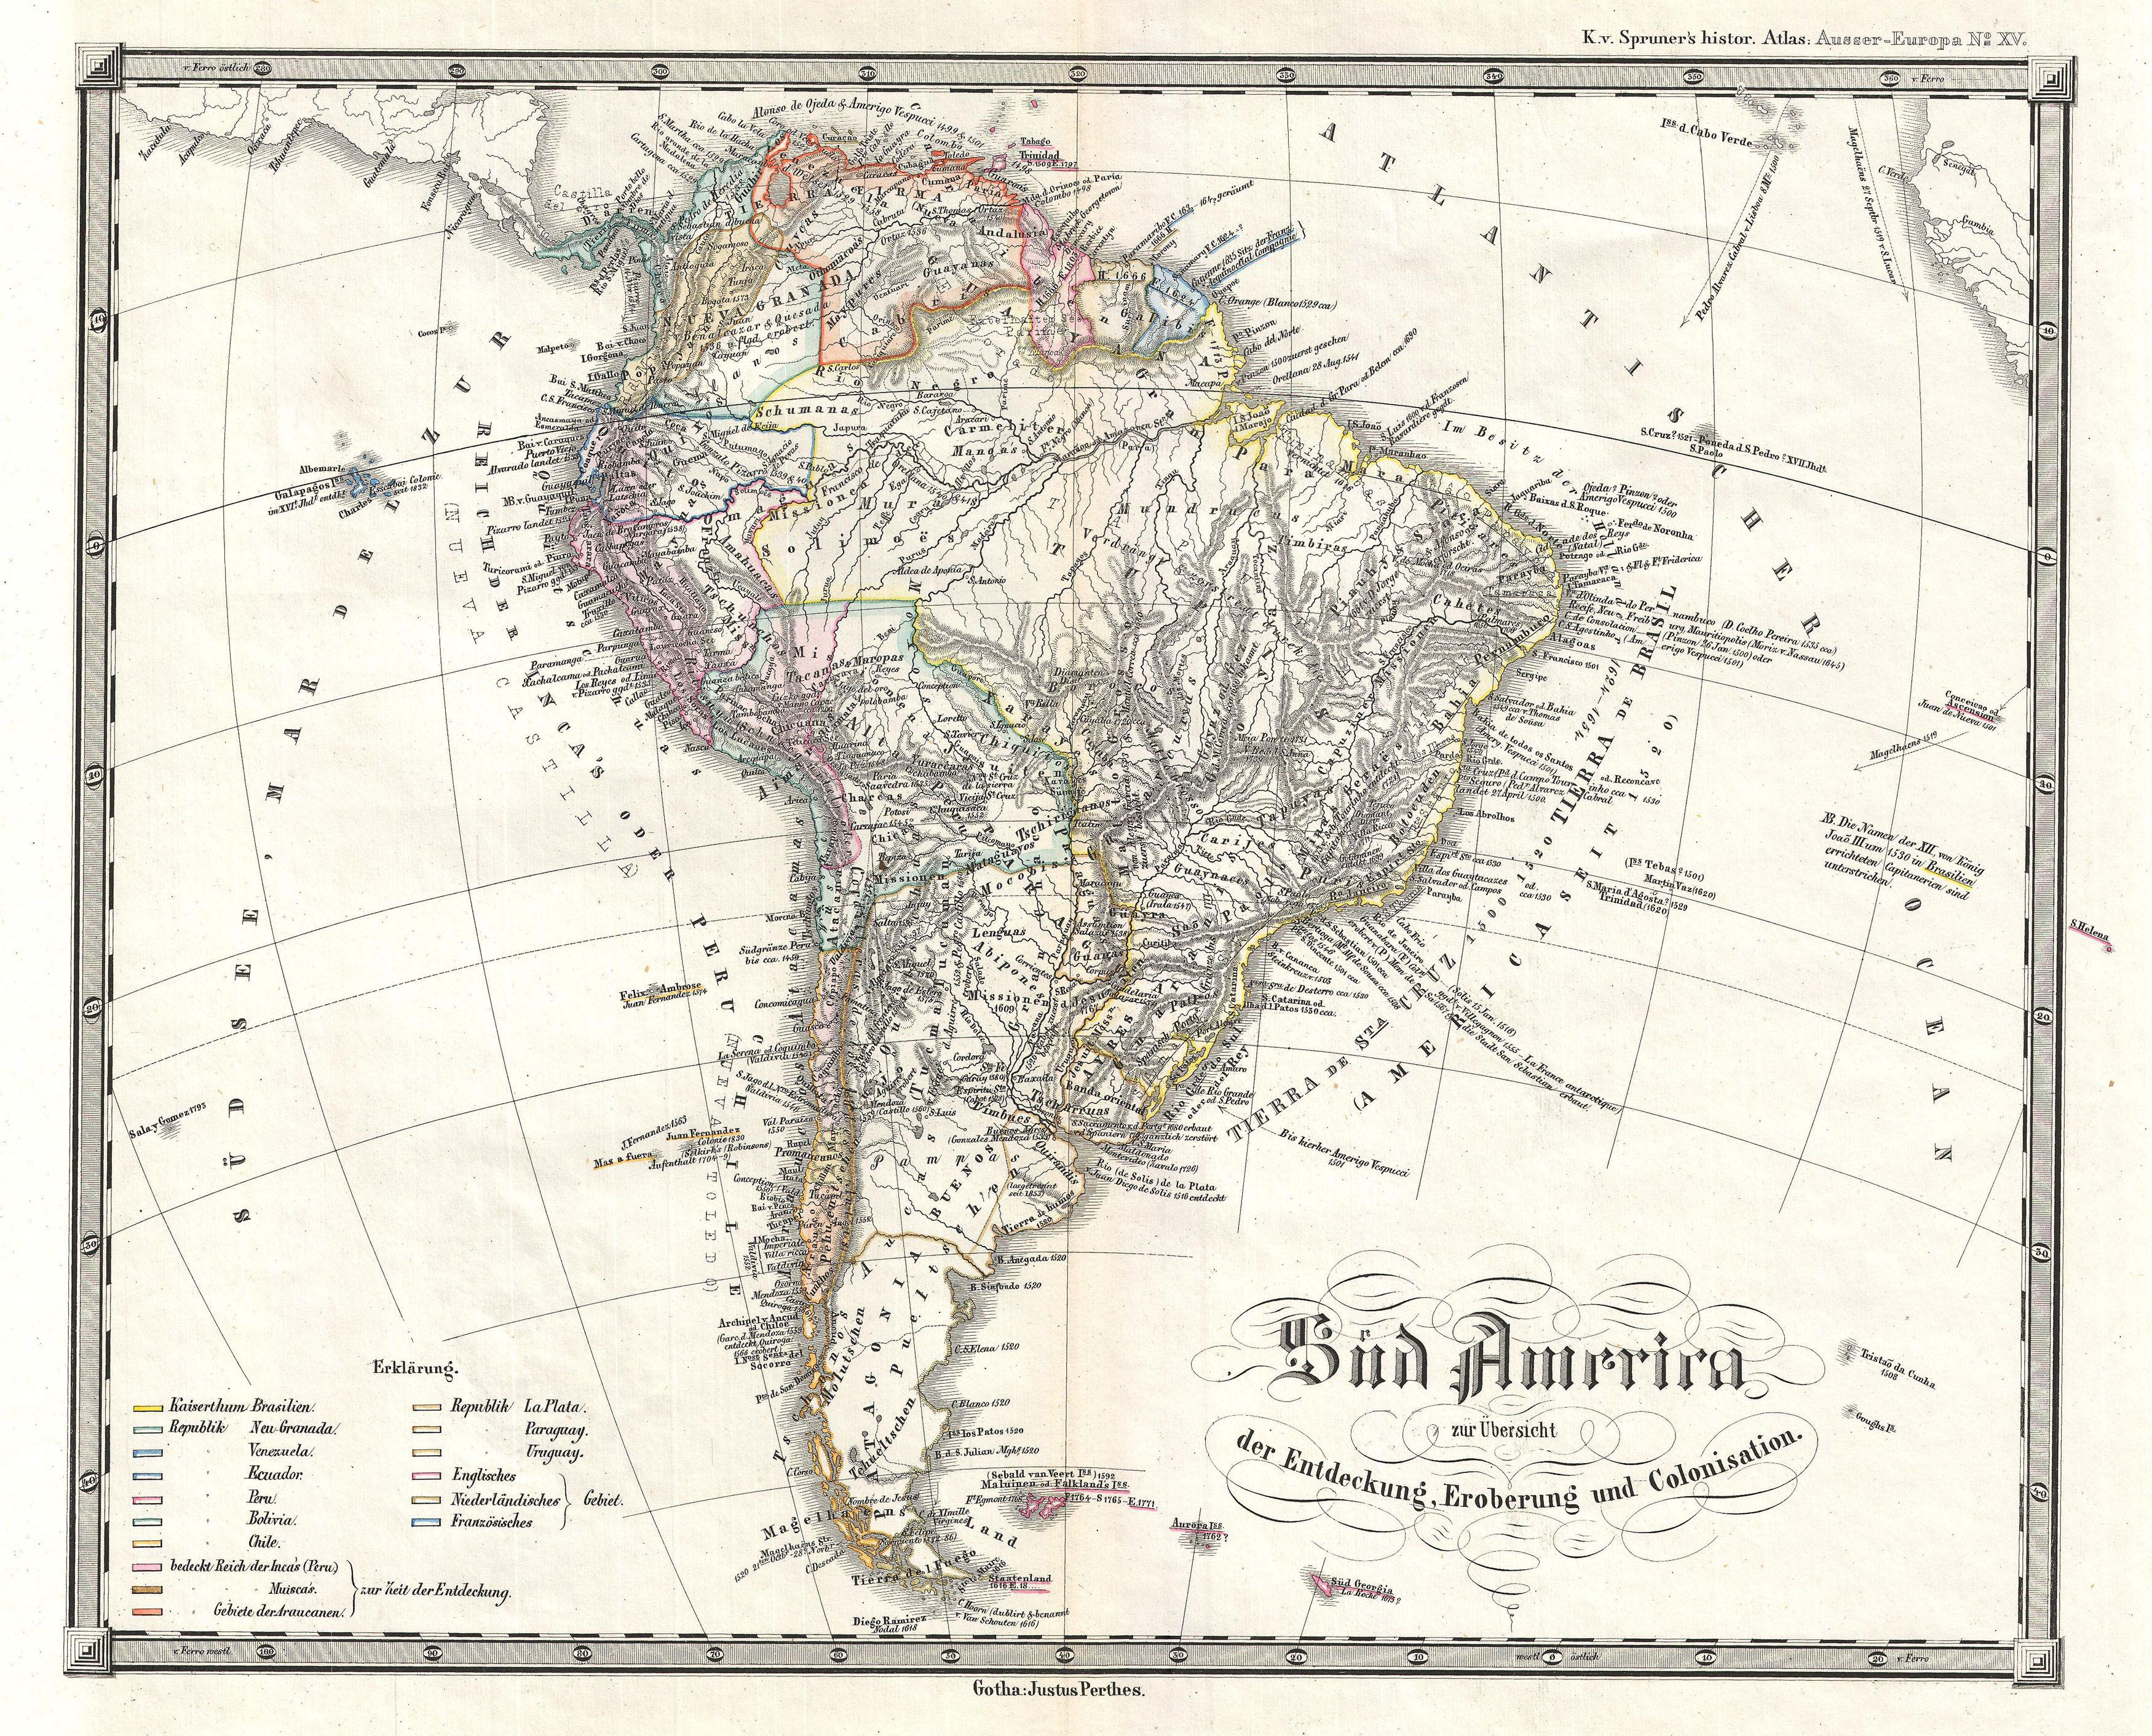 colonization of latin america and north Depending on who colonized what area, the regions also differ culturally north america is predominantly influenced by britain, as majority of the north america, mainly usa and canada, were colonized by great britain whereas, mexico, parts of central america, and majority of south america were under the rule of spain,.